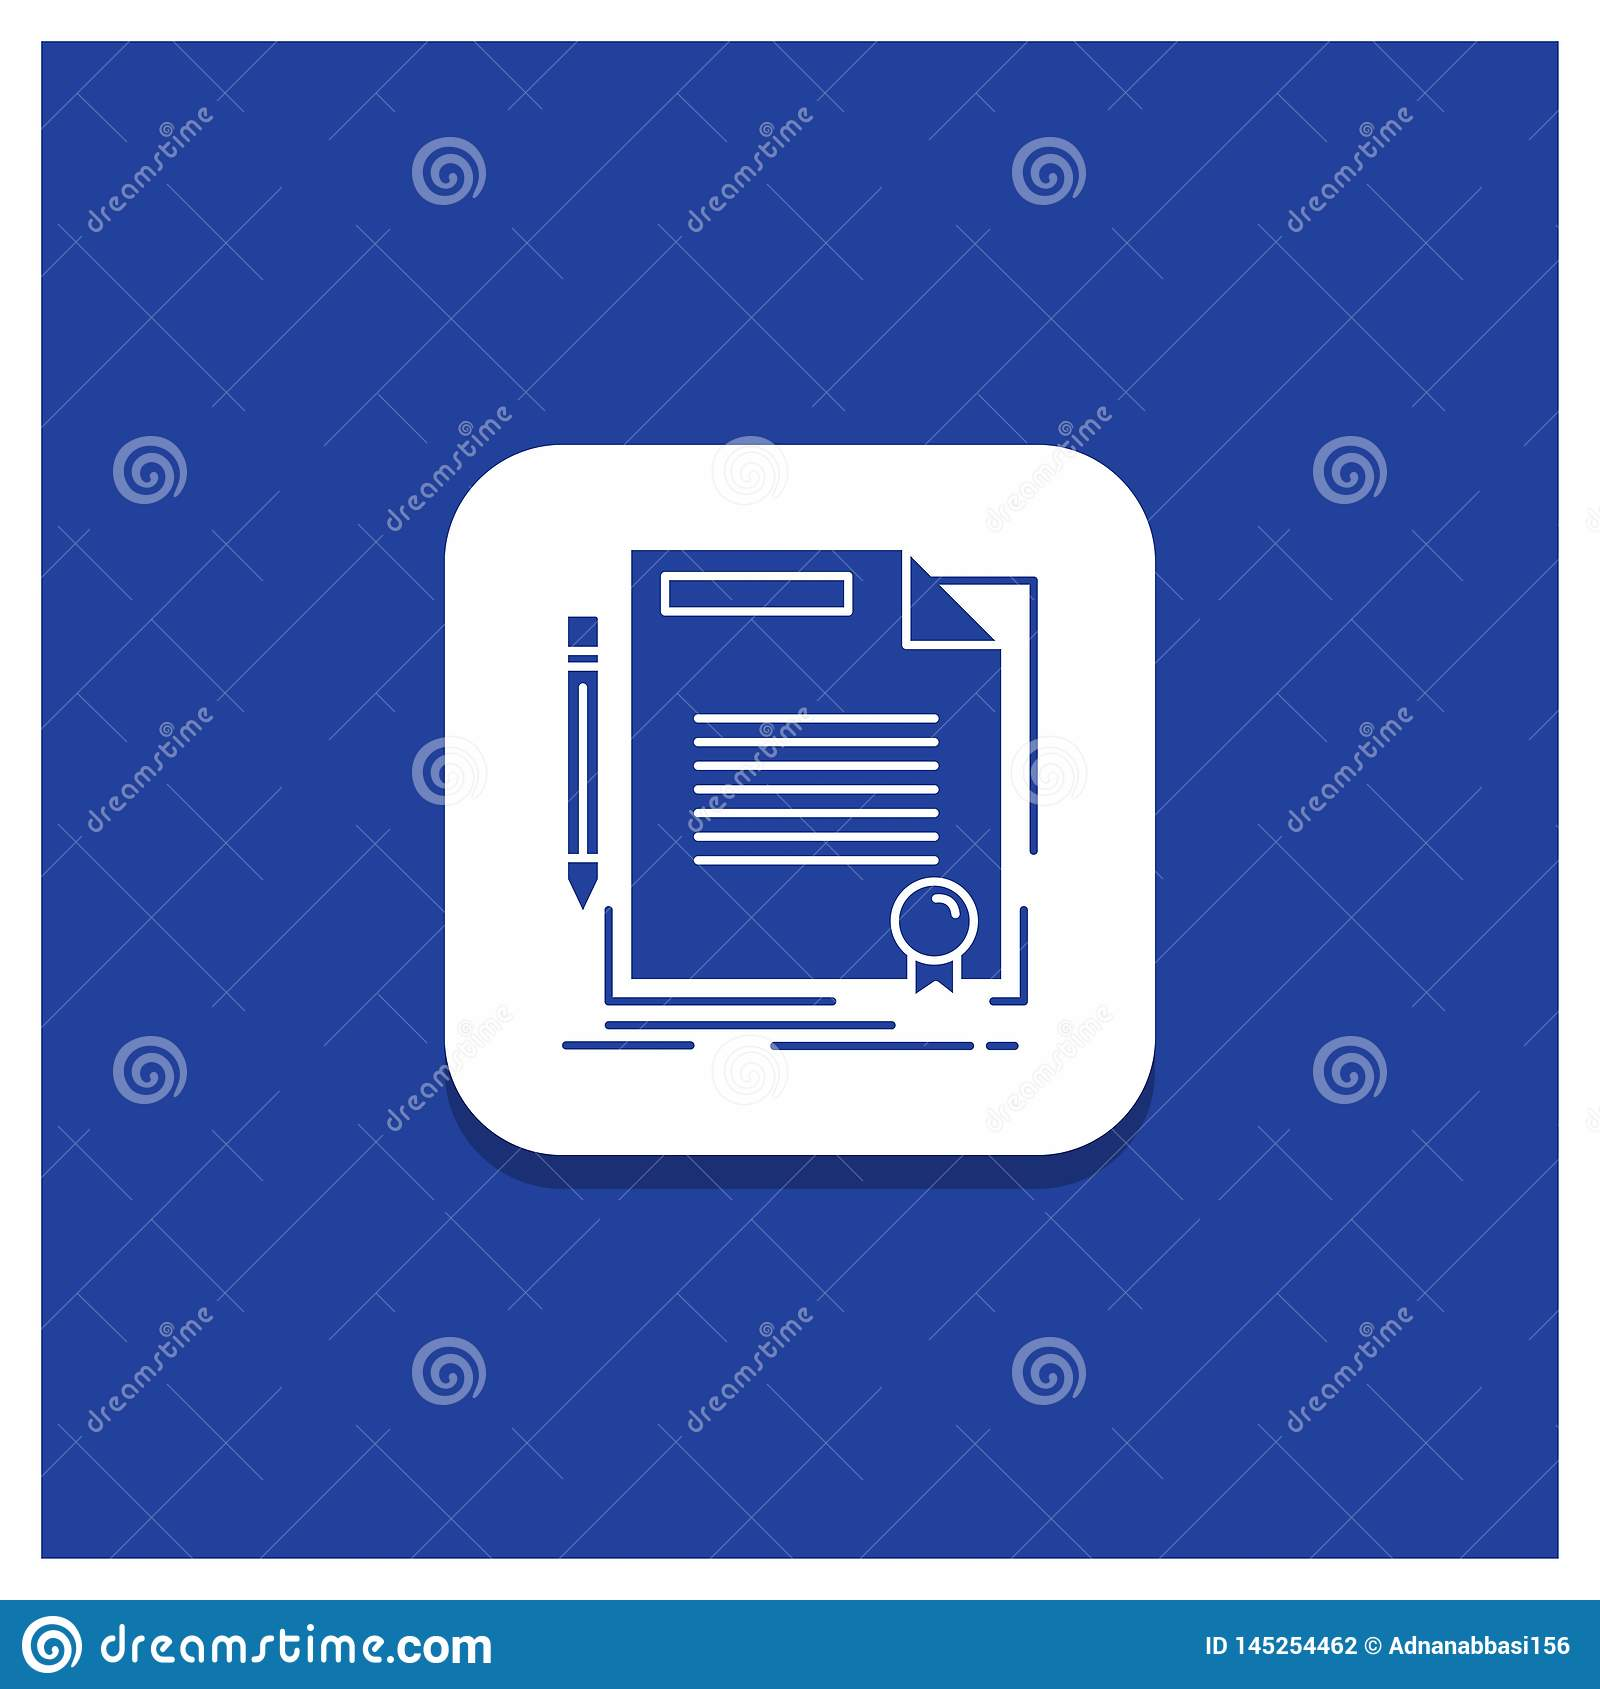 Blue Round Button for agreement, contract, deal, document, paper Glyph icon